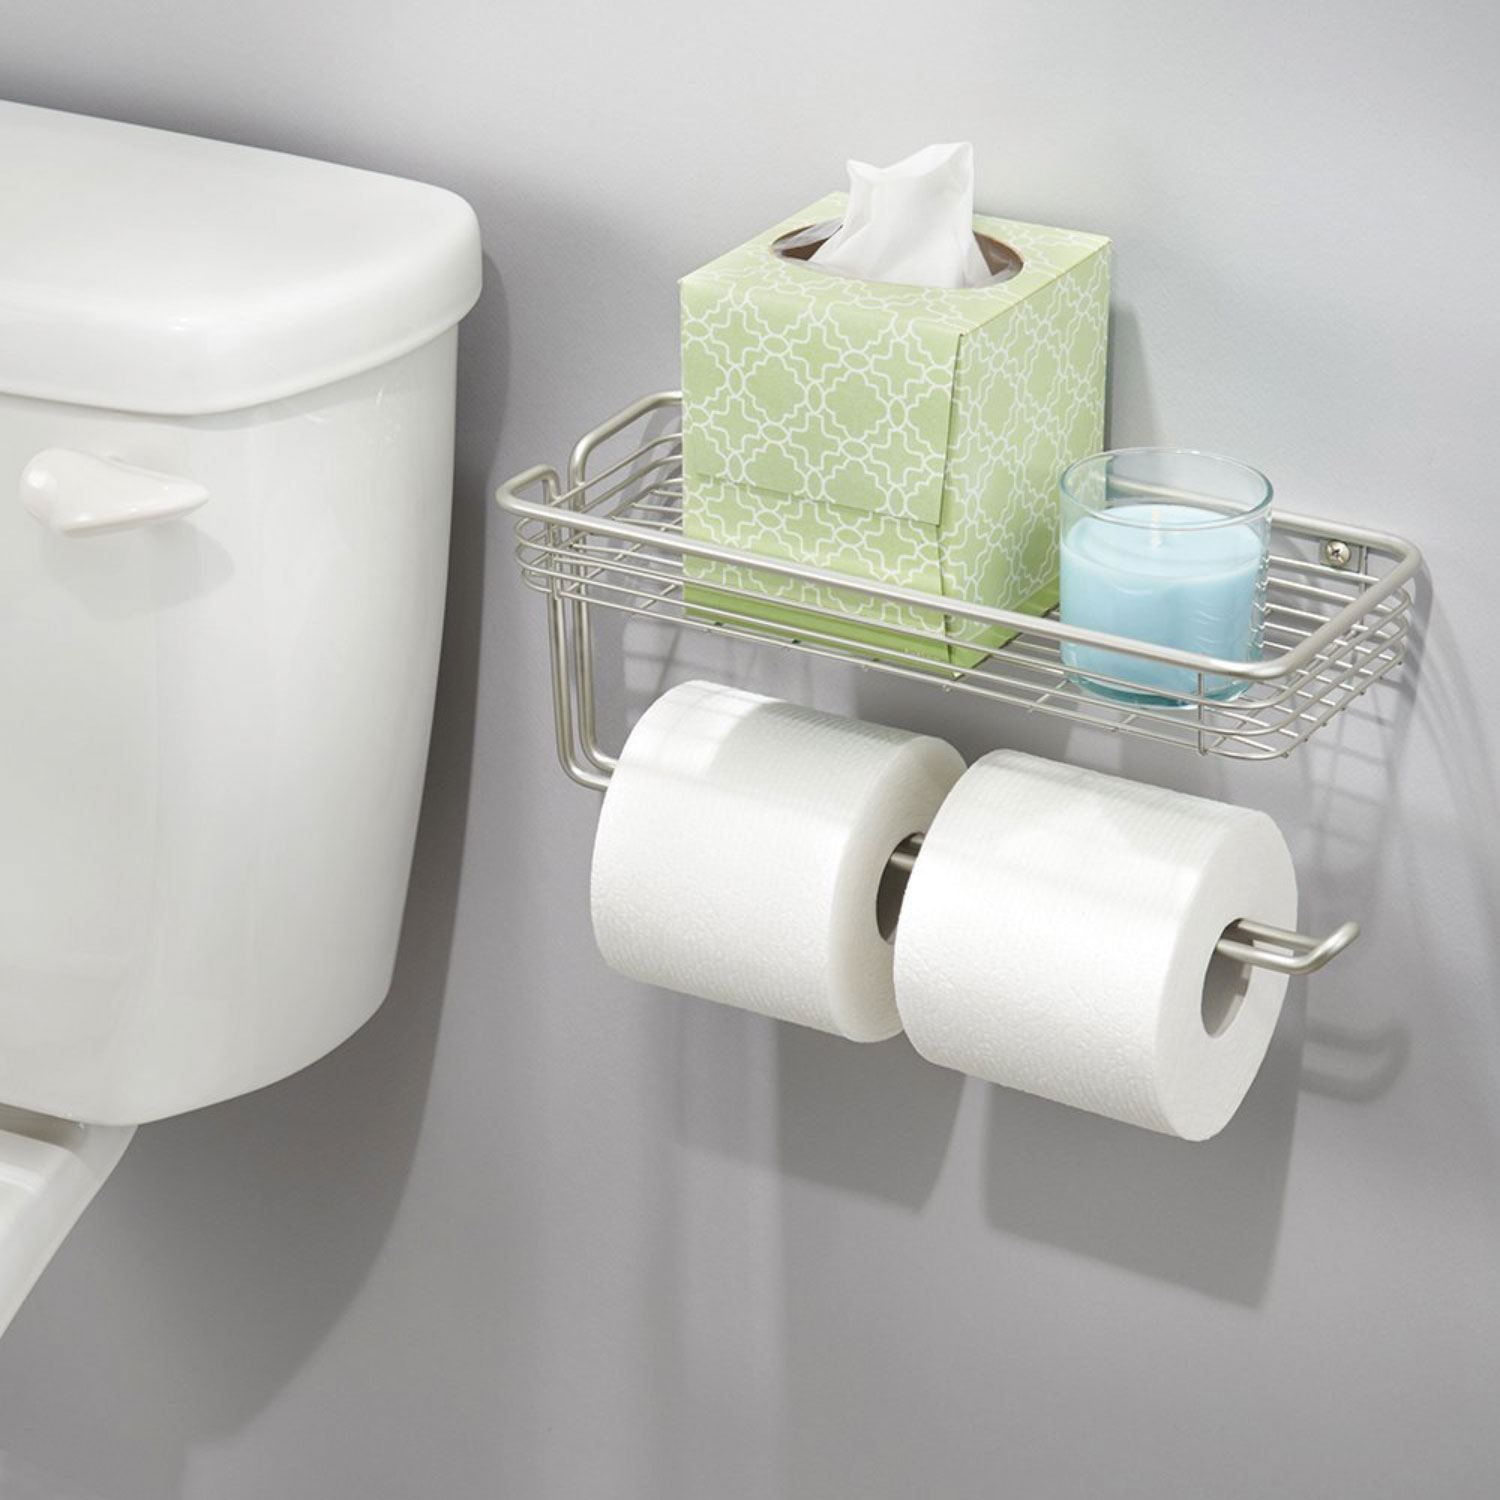 Wall mounted double toilet paper roll holder bathroom organiser with shelf new for Small bathroom toilet paper holder